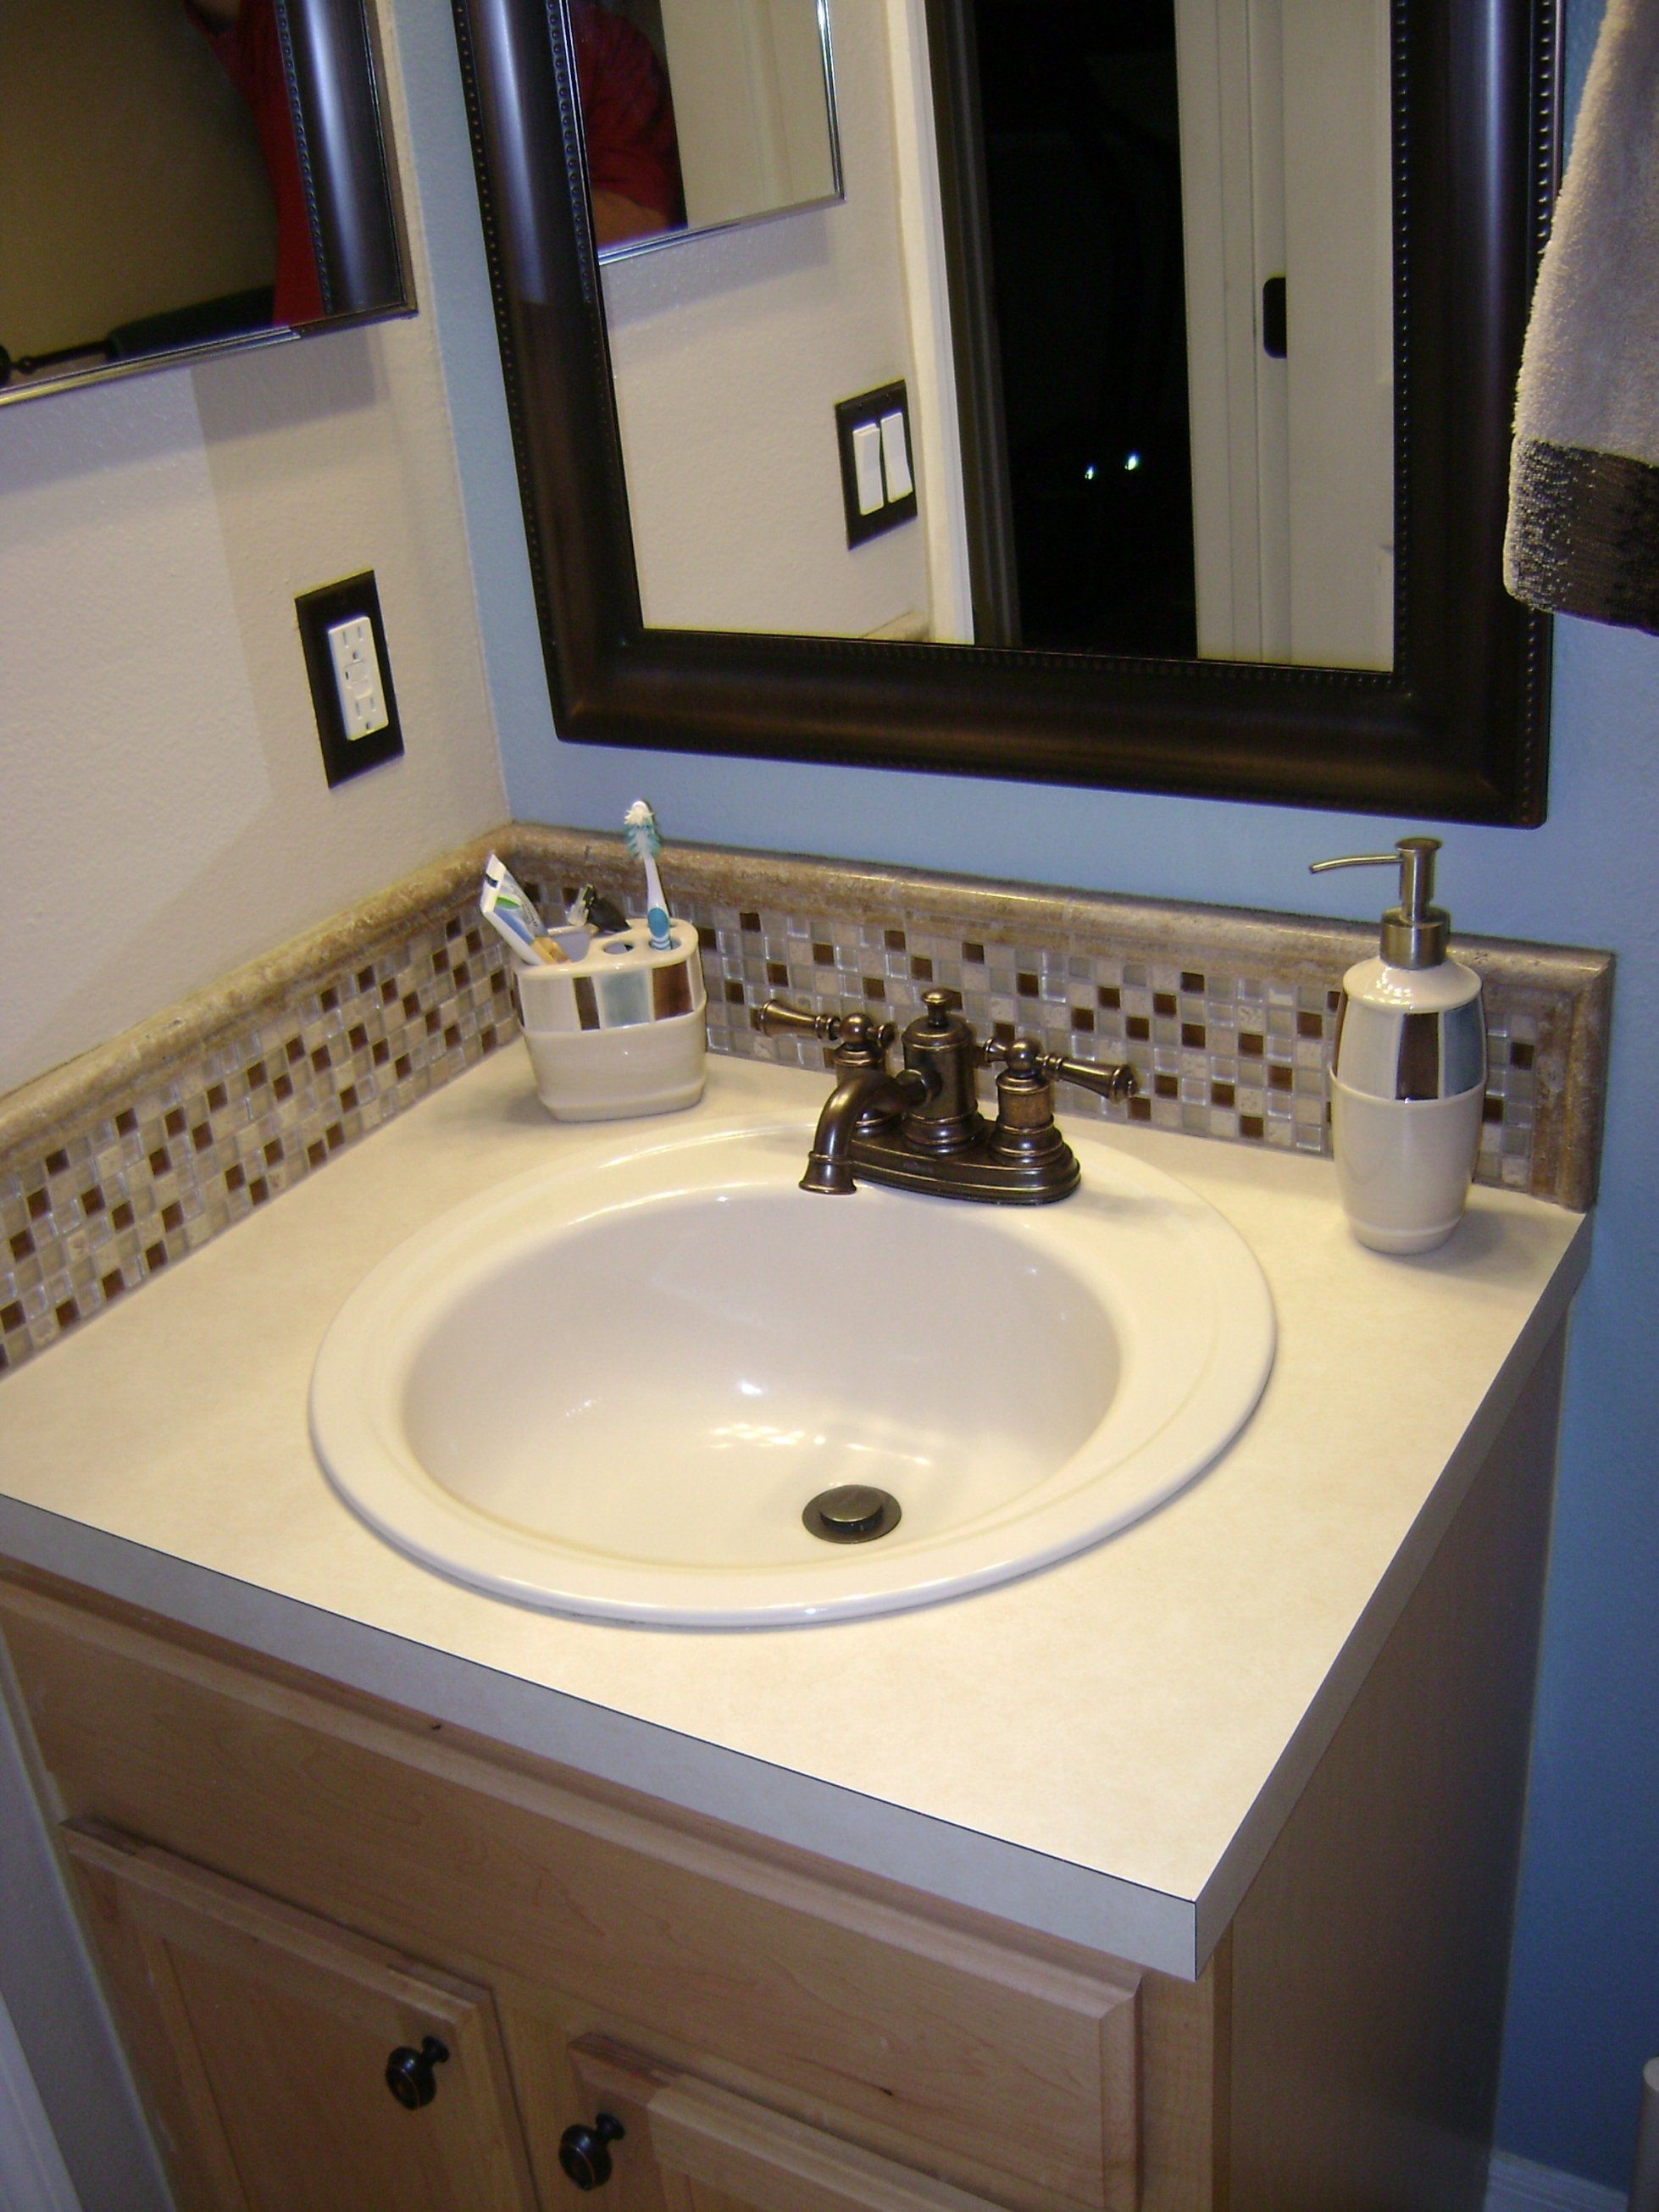 You Are Now Viewing White And Brown Mosaic Tile Bathroom Sink